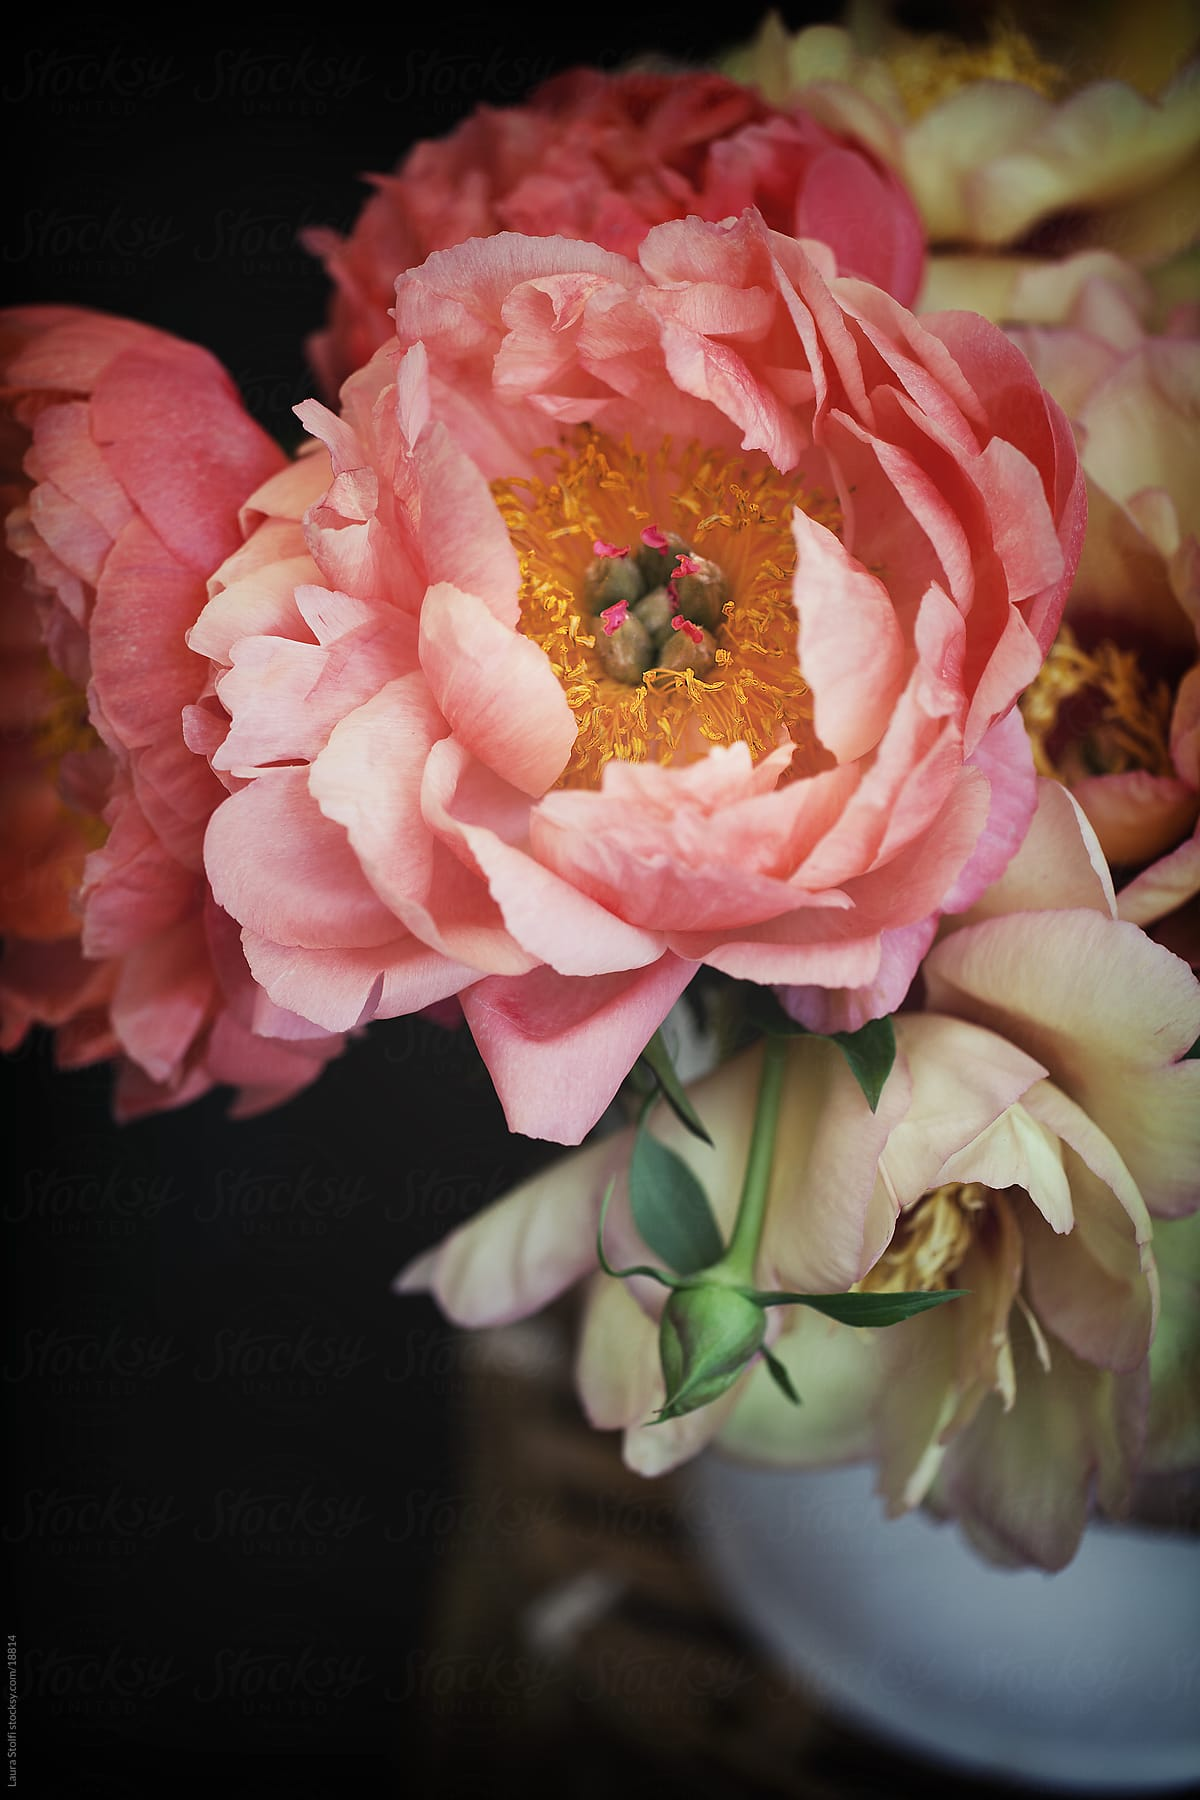 Detail Of Orange Pink And Yellow Peonies Bouquet In Enamel Old Can By Laura Stolfi Flower Coral Stocksy United